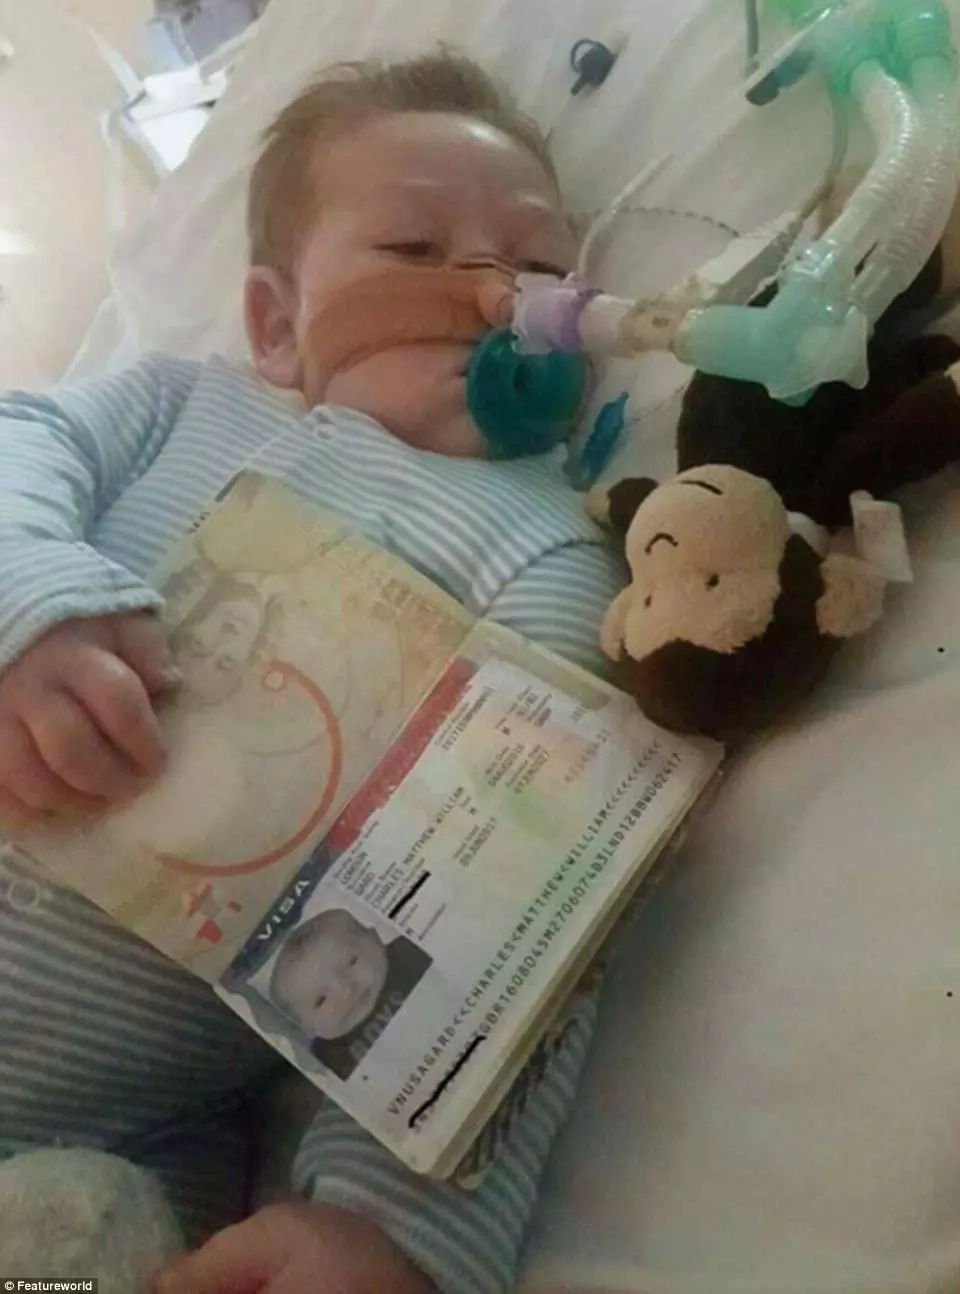 Rest in peace! Baby Charlie Gard finally dies after long battle with an extremely rare genetic condition